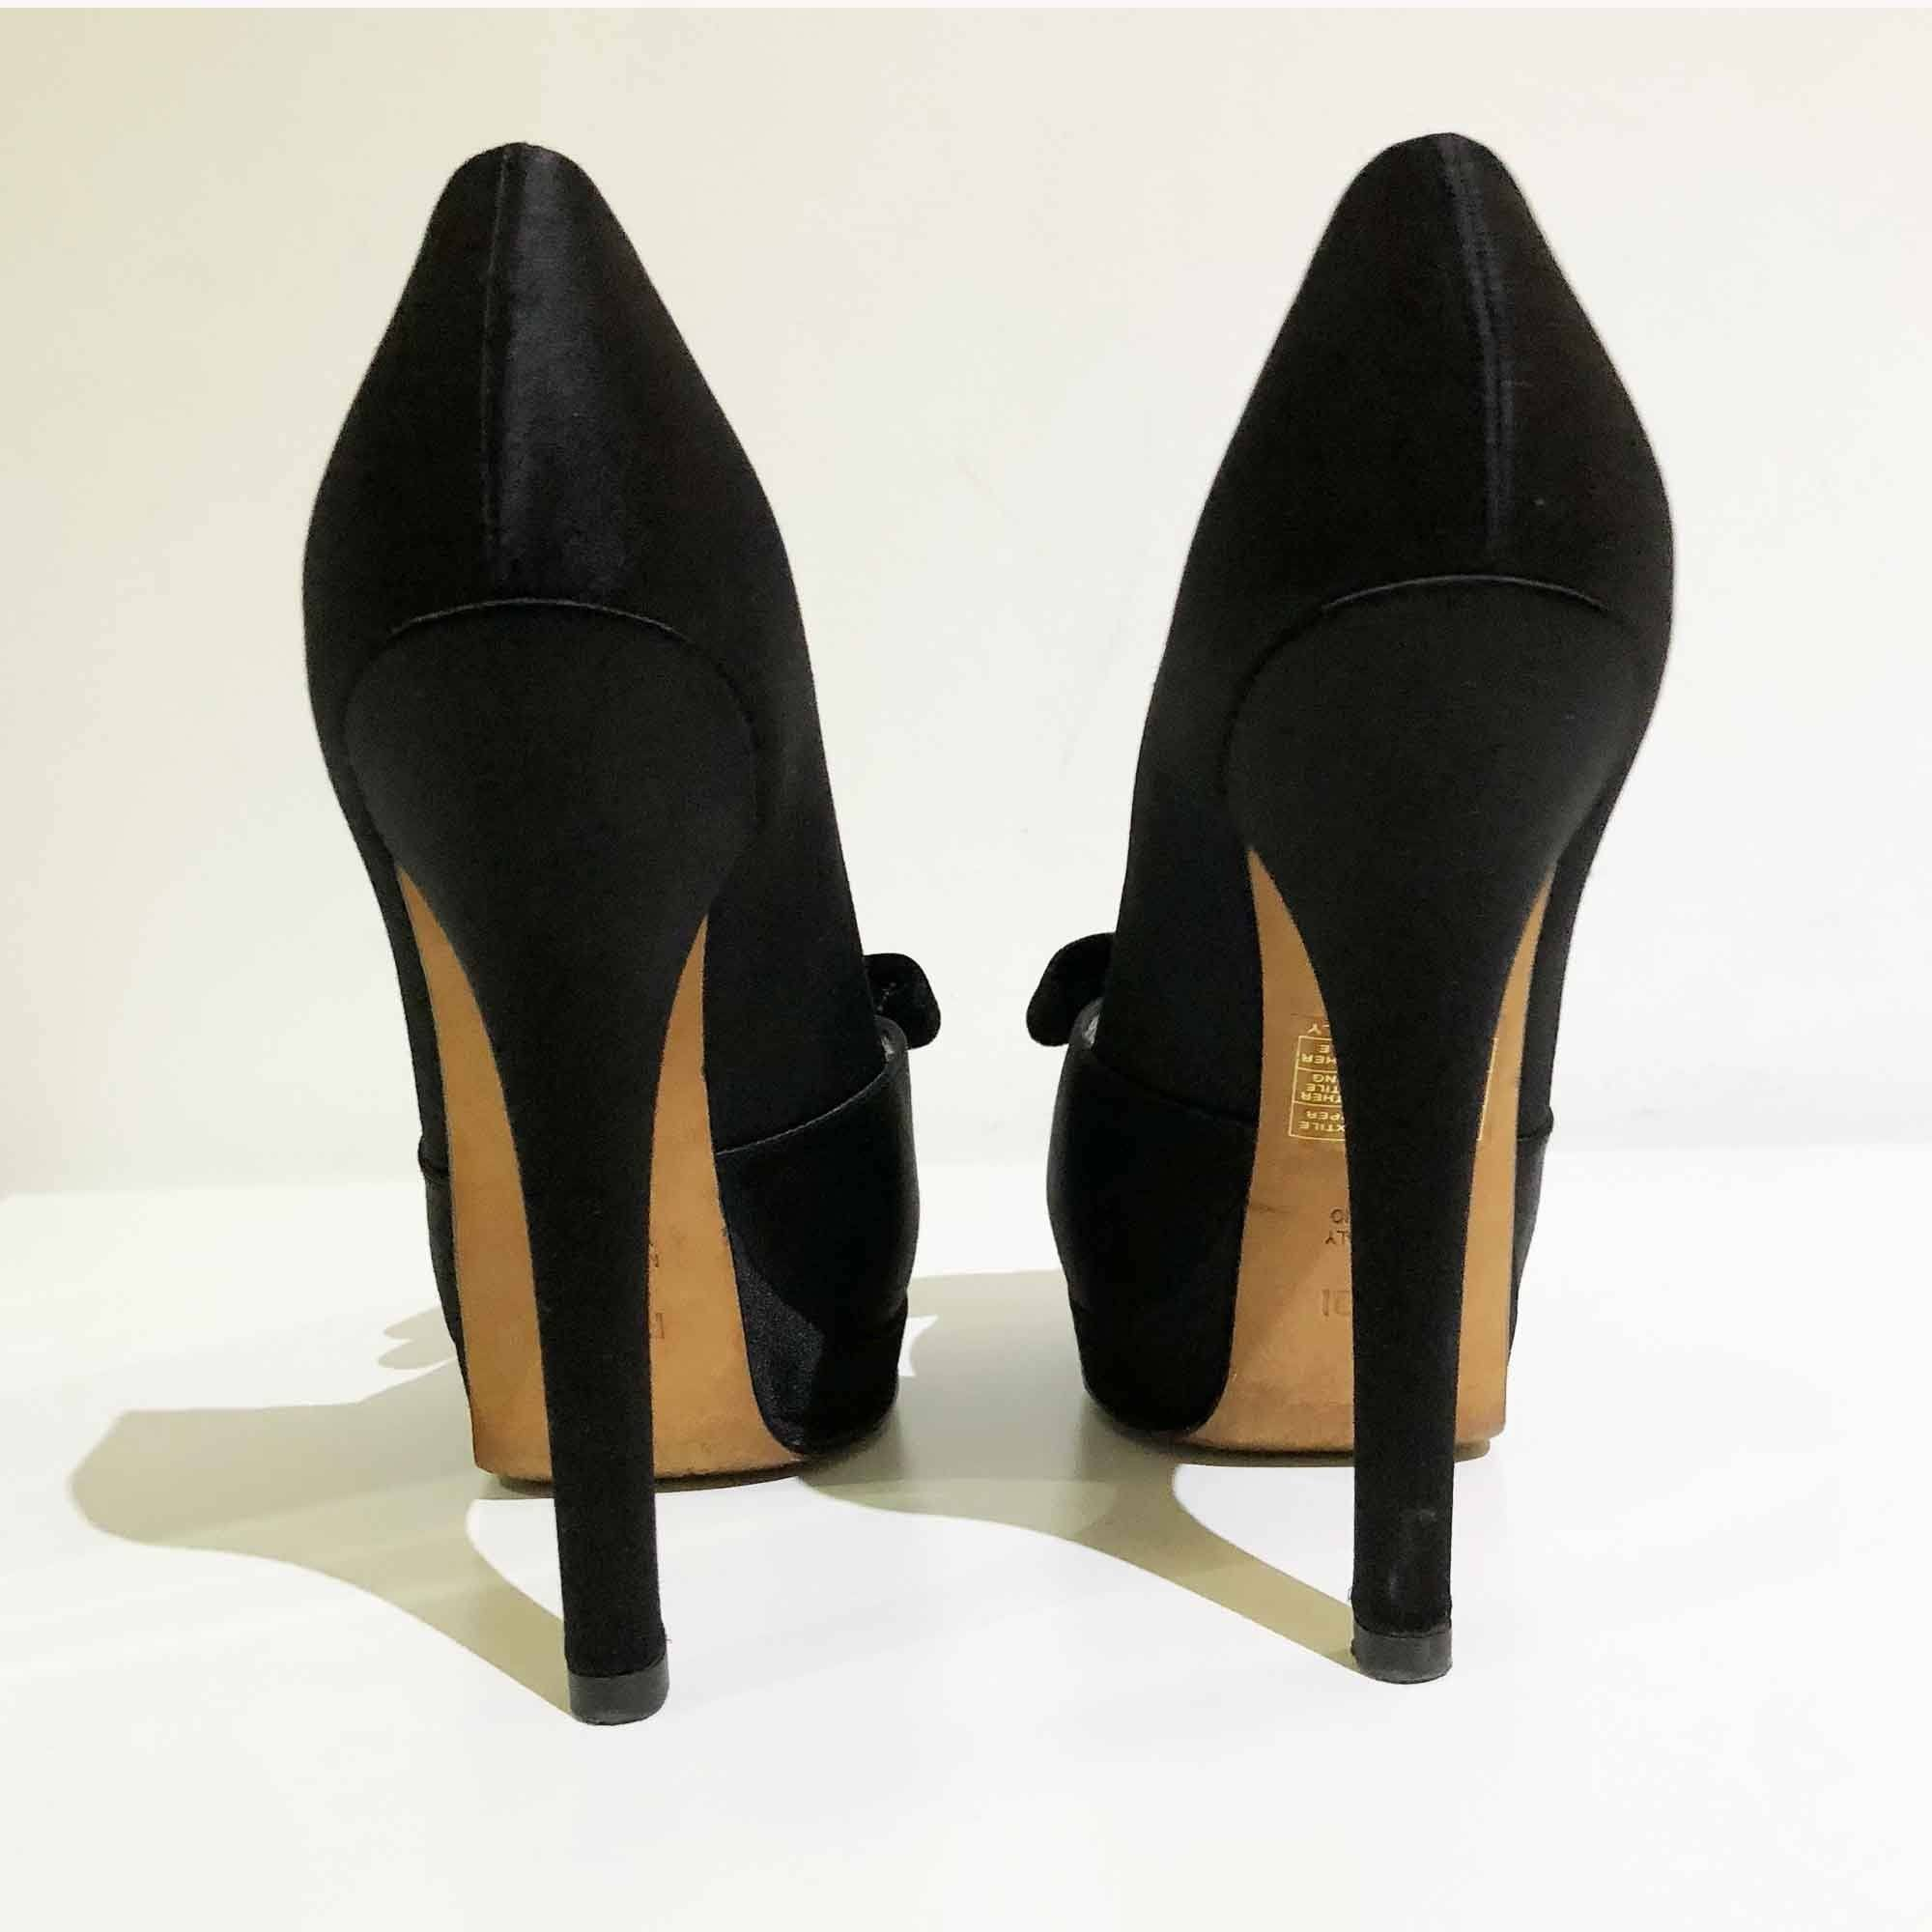 Fendi Black Satin Velvet Bow Peep Toe Platform Pumps